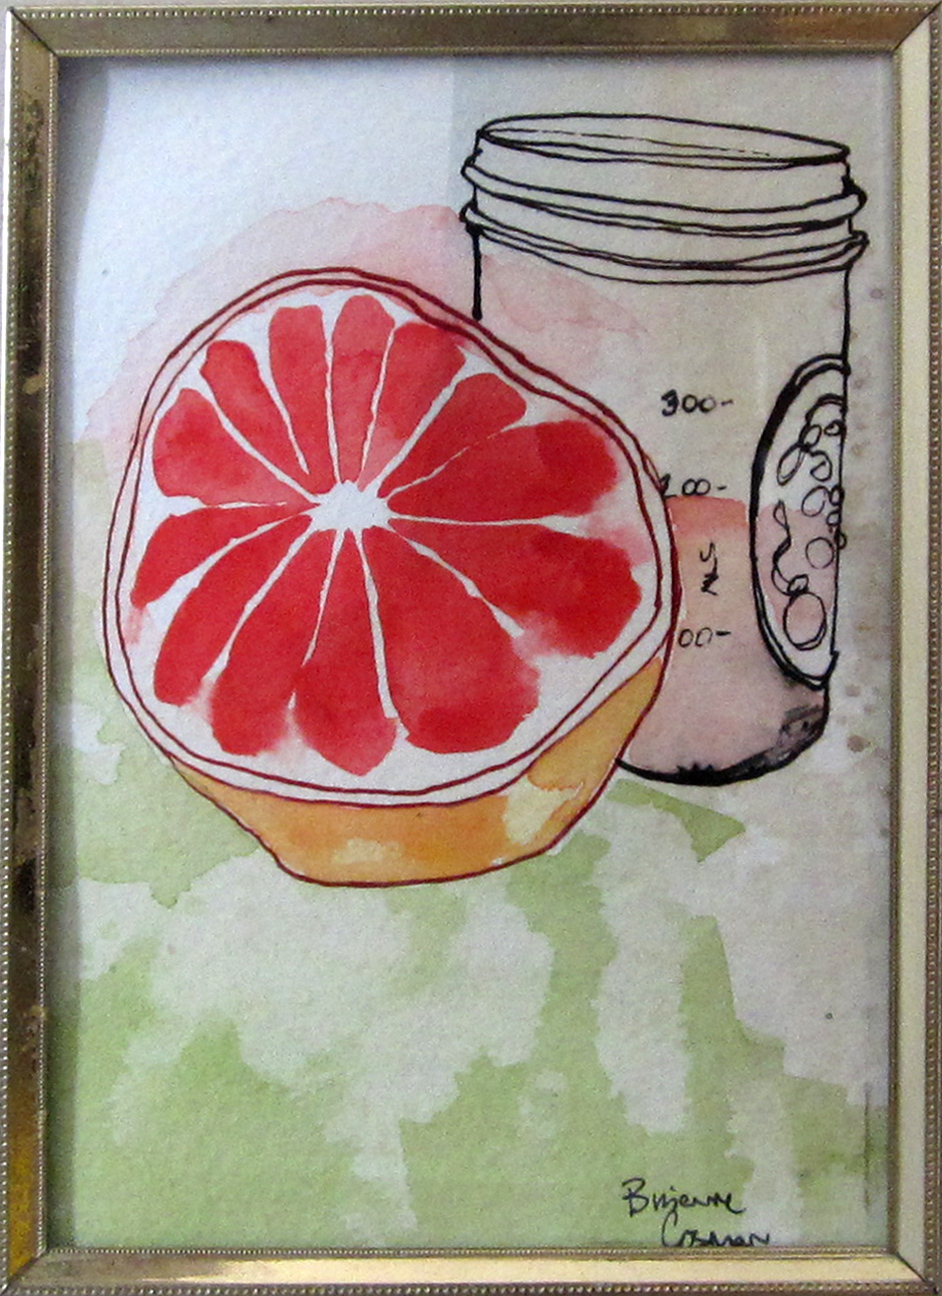 36: Fresh Grapefruit Juice 5 x 7""